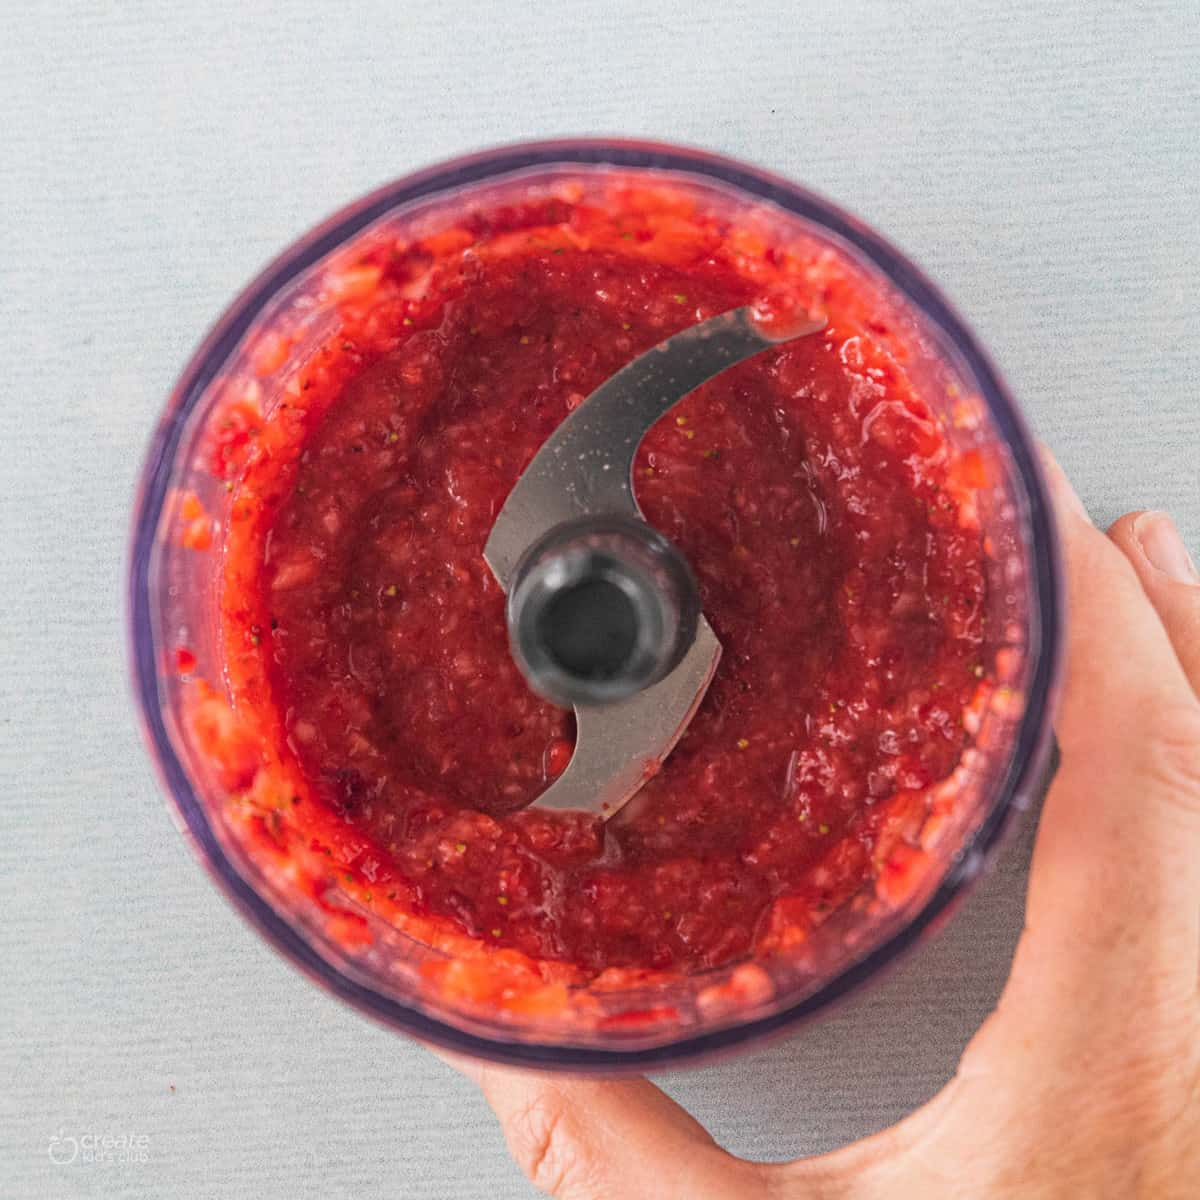 Strawberry puree in a blender.